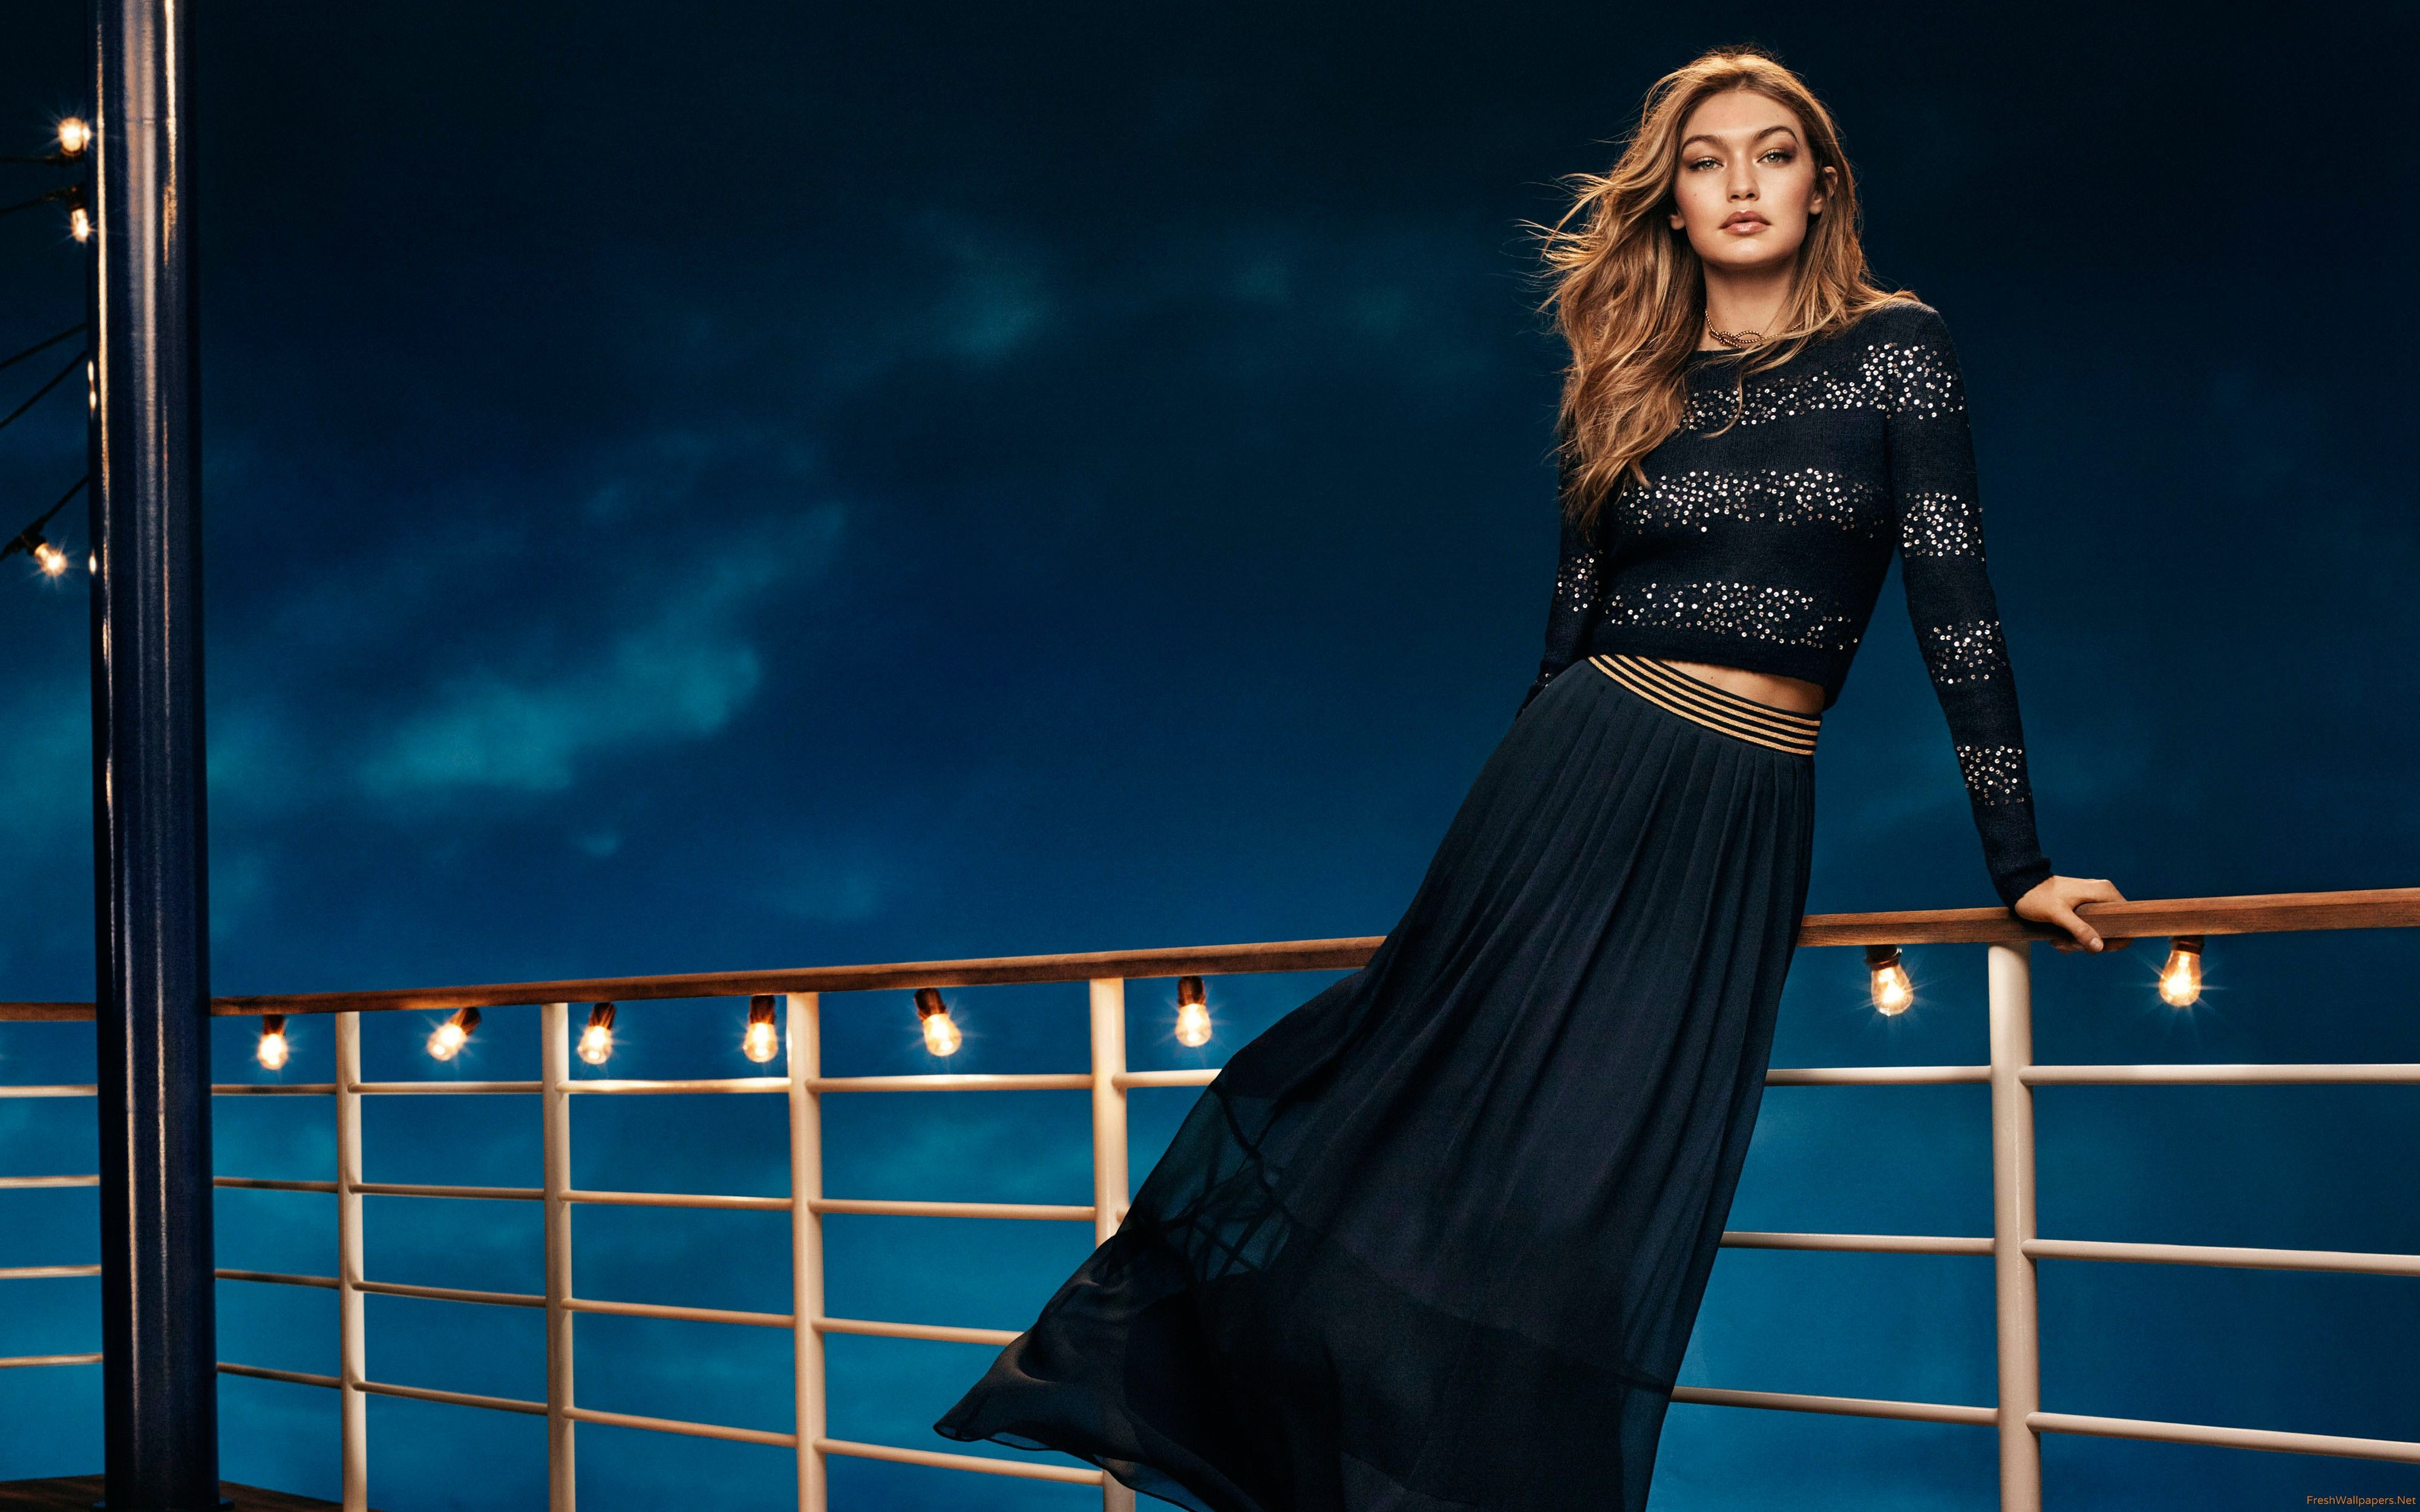 4000x2500 Gigi Hadid Tommy Hilfiger Collection 4K wallpapers ...